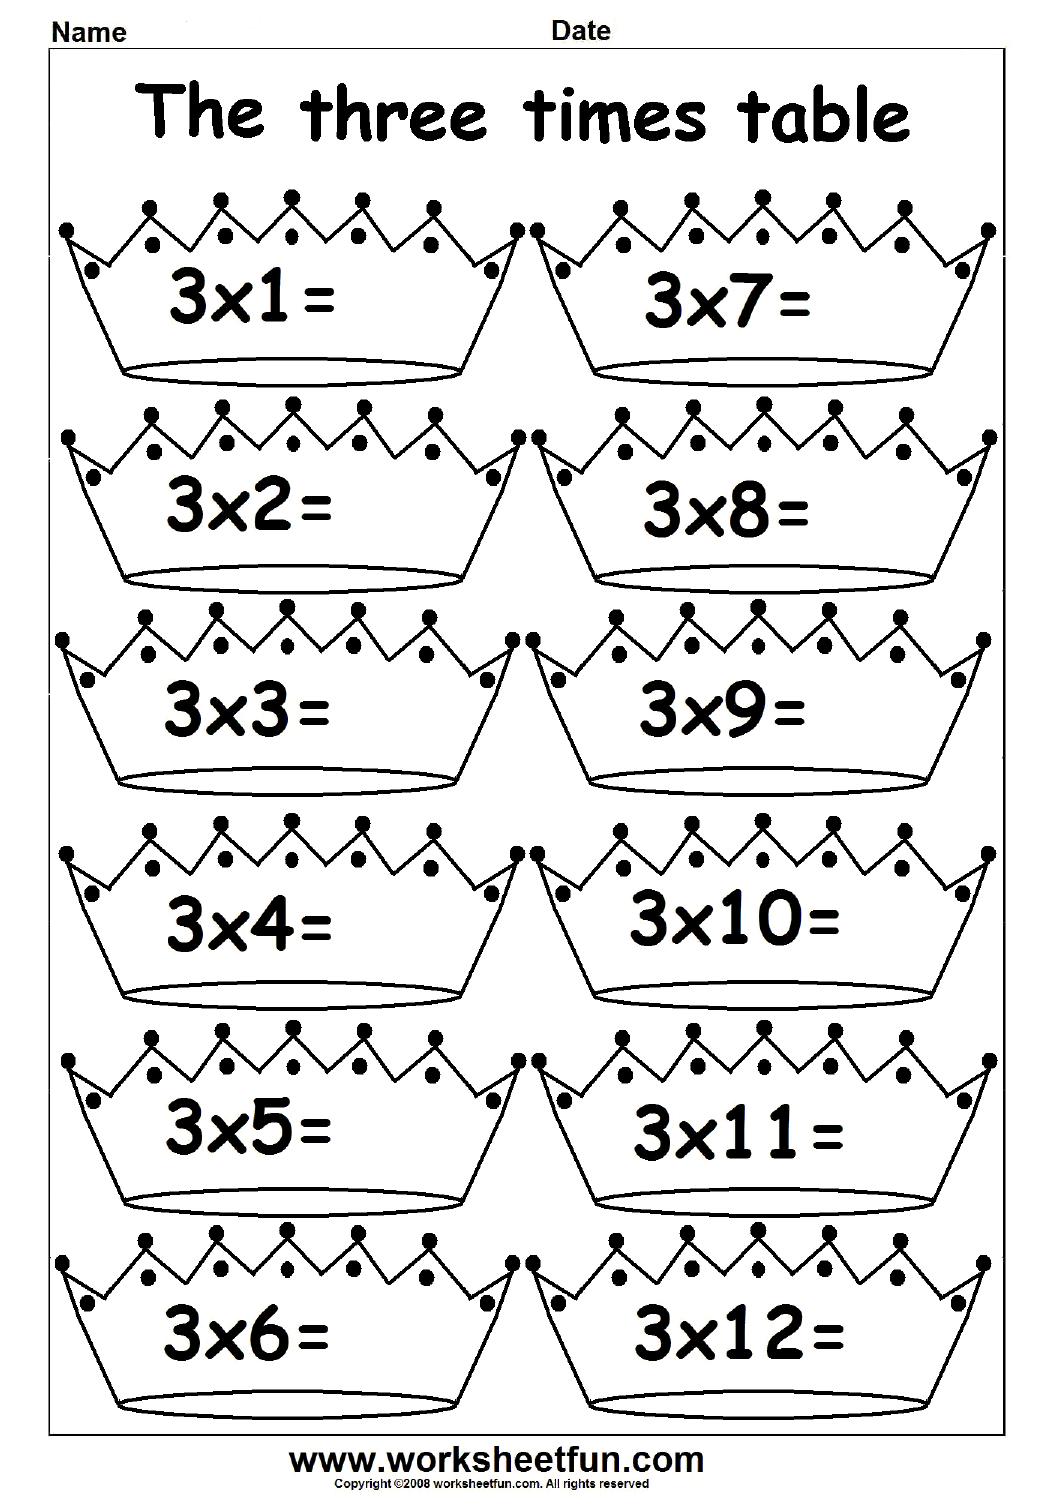 Worksheet 10541492 3 Times Multiplication Worksheets – Multiplication Worksheets 0-2